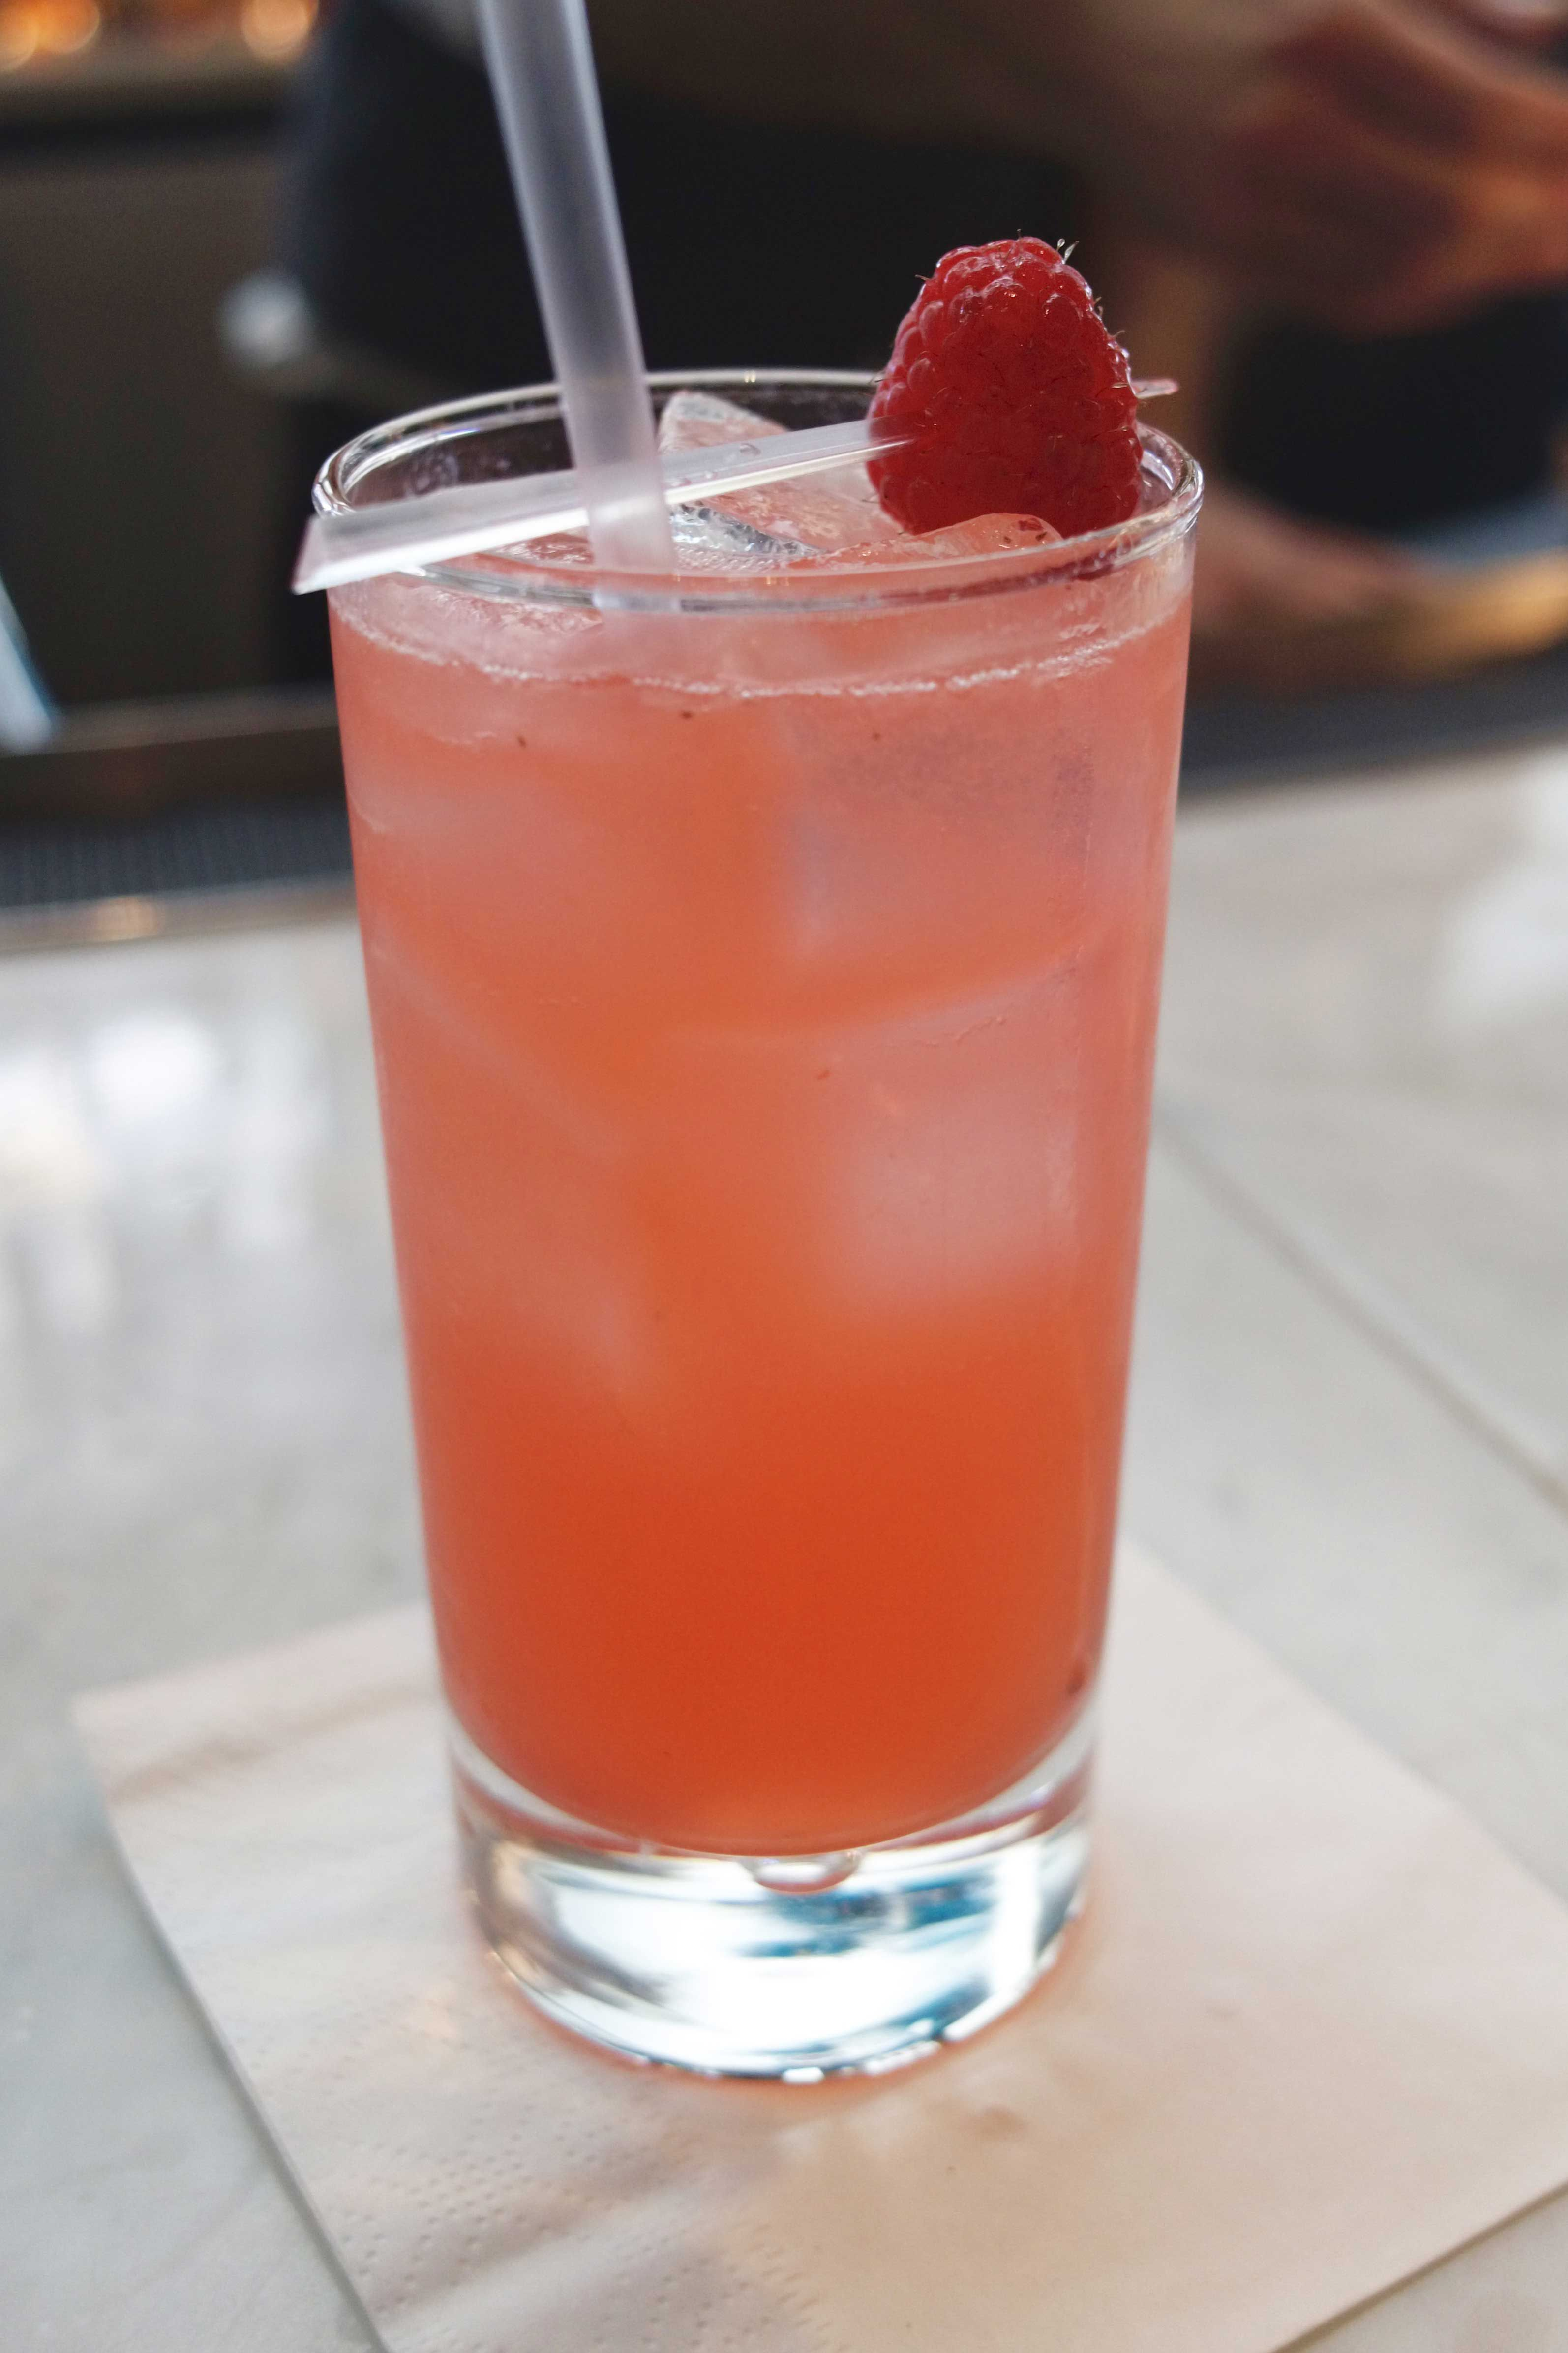 Fruity alcoholic beverages